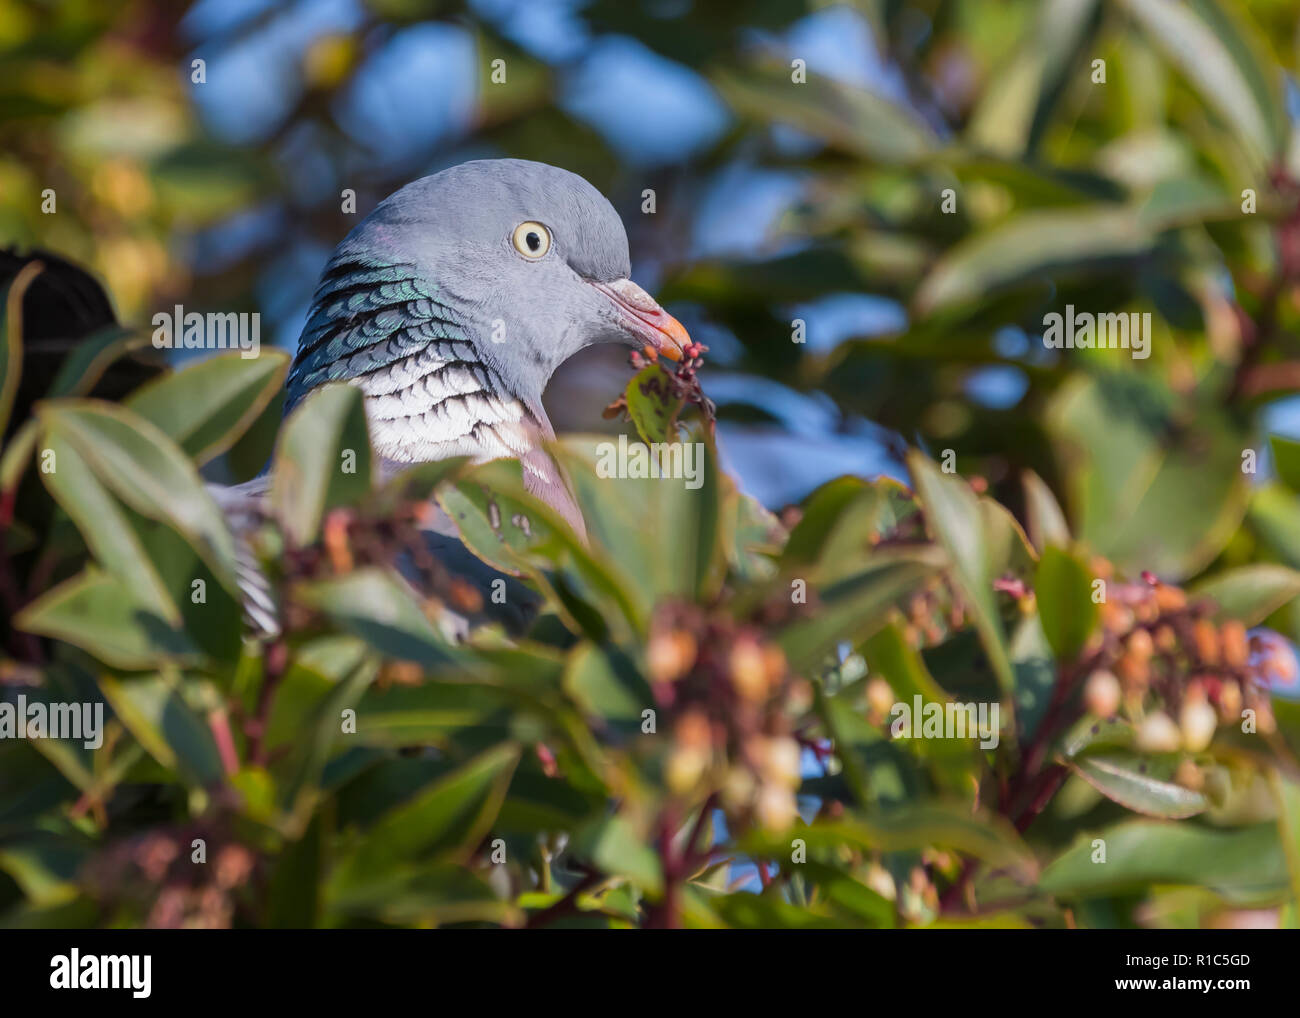 Concealed body with head popping up of a Common Wood Pigeon (Columba palumbus) perched in a tree in Winter in West Sussex, UK. - Stock Image